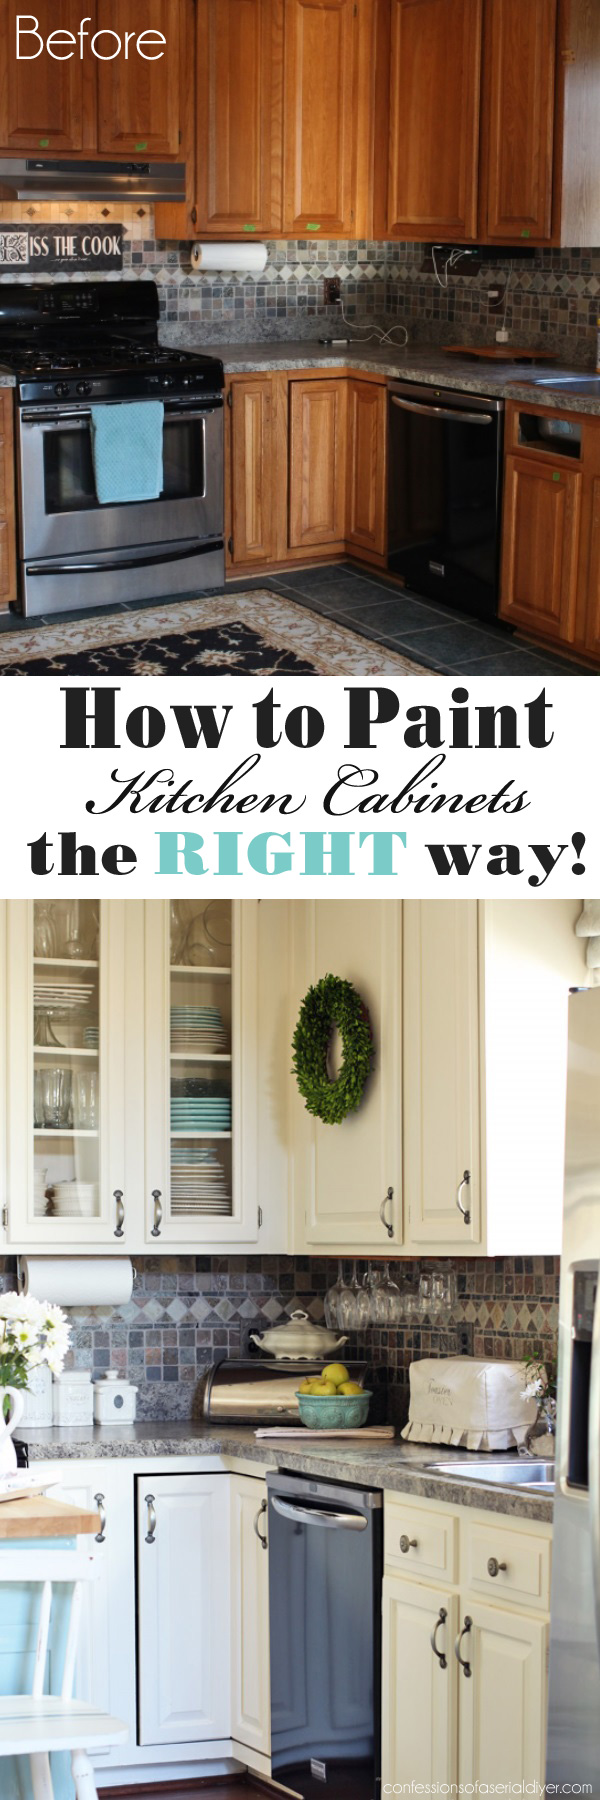 How To Paint Kitchen Cabinets A StepbyStep Guide Confessions - Refurbish kitchen cabinets